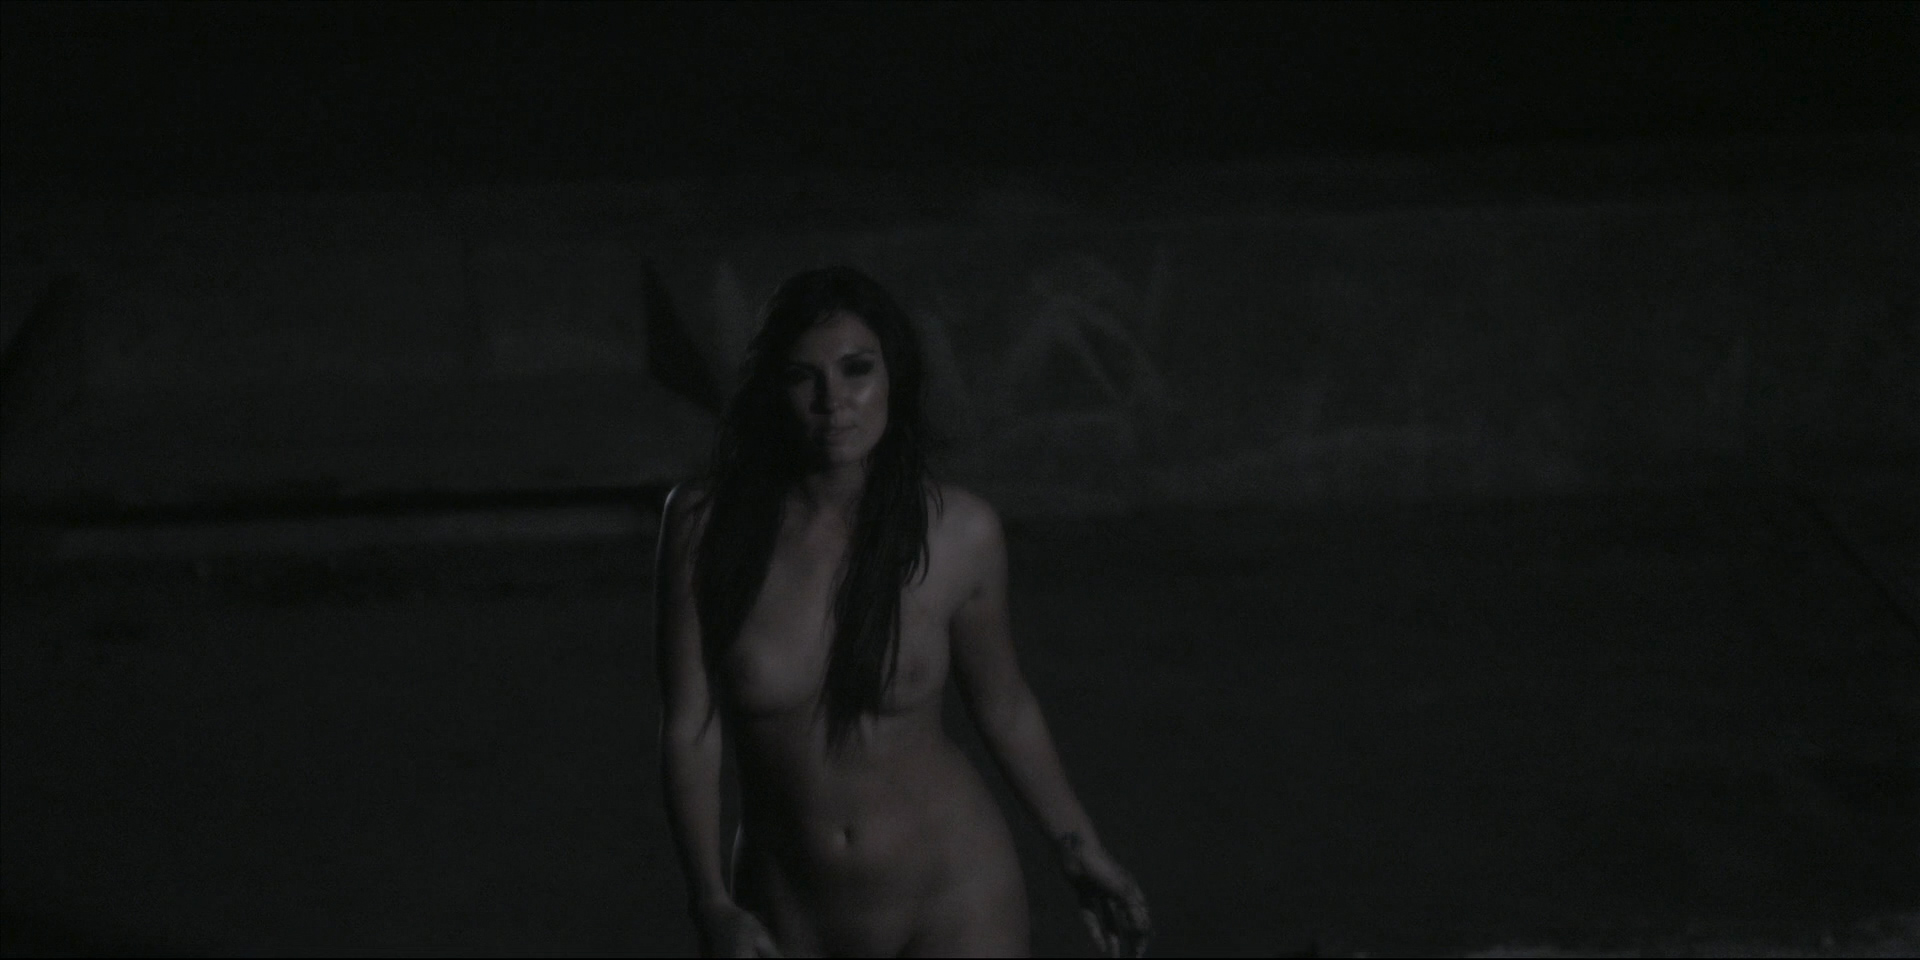 Victoria Johnstone nude butt boobs and Meredith Majors nude but covered – Lake Eerie (2016) HD 1080p (2)